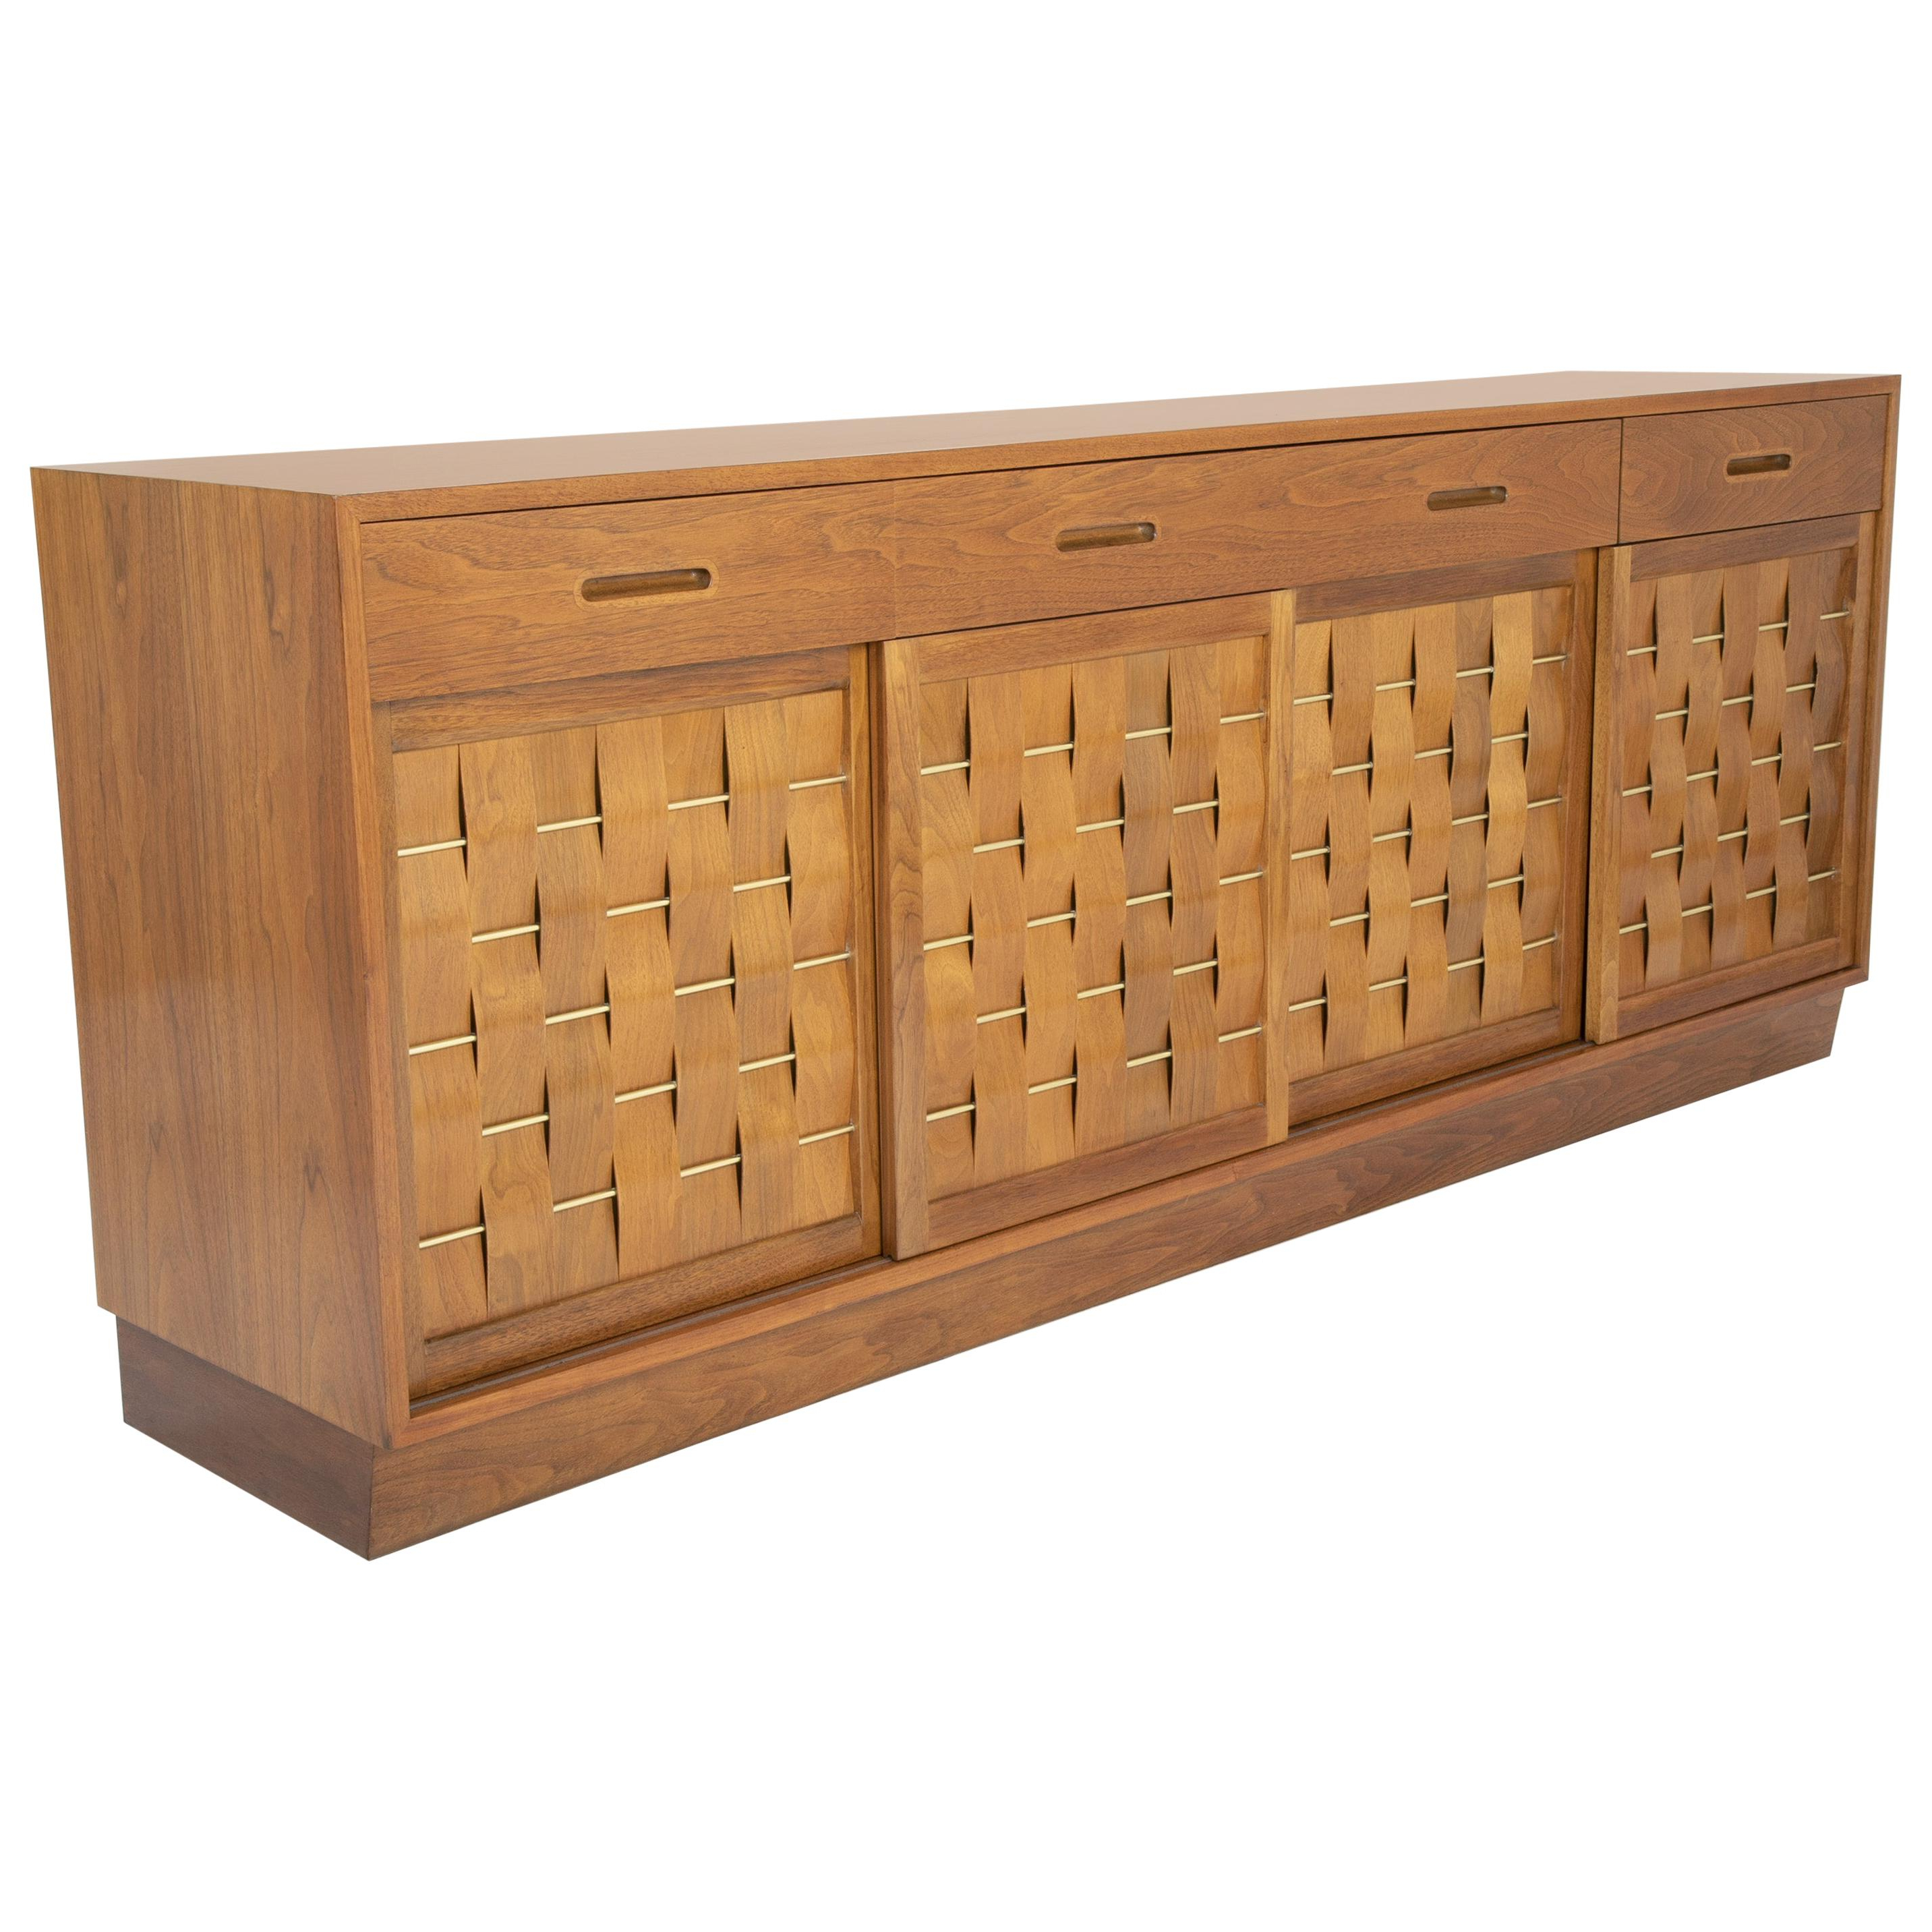 Edward Wormley Sideboards – 38 For Sale At 1stdibs With Regard To Gertrude Sideboards (View 5 of 20)